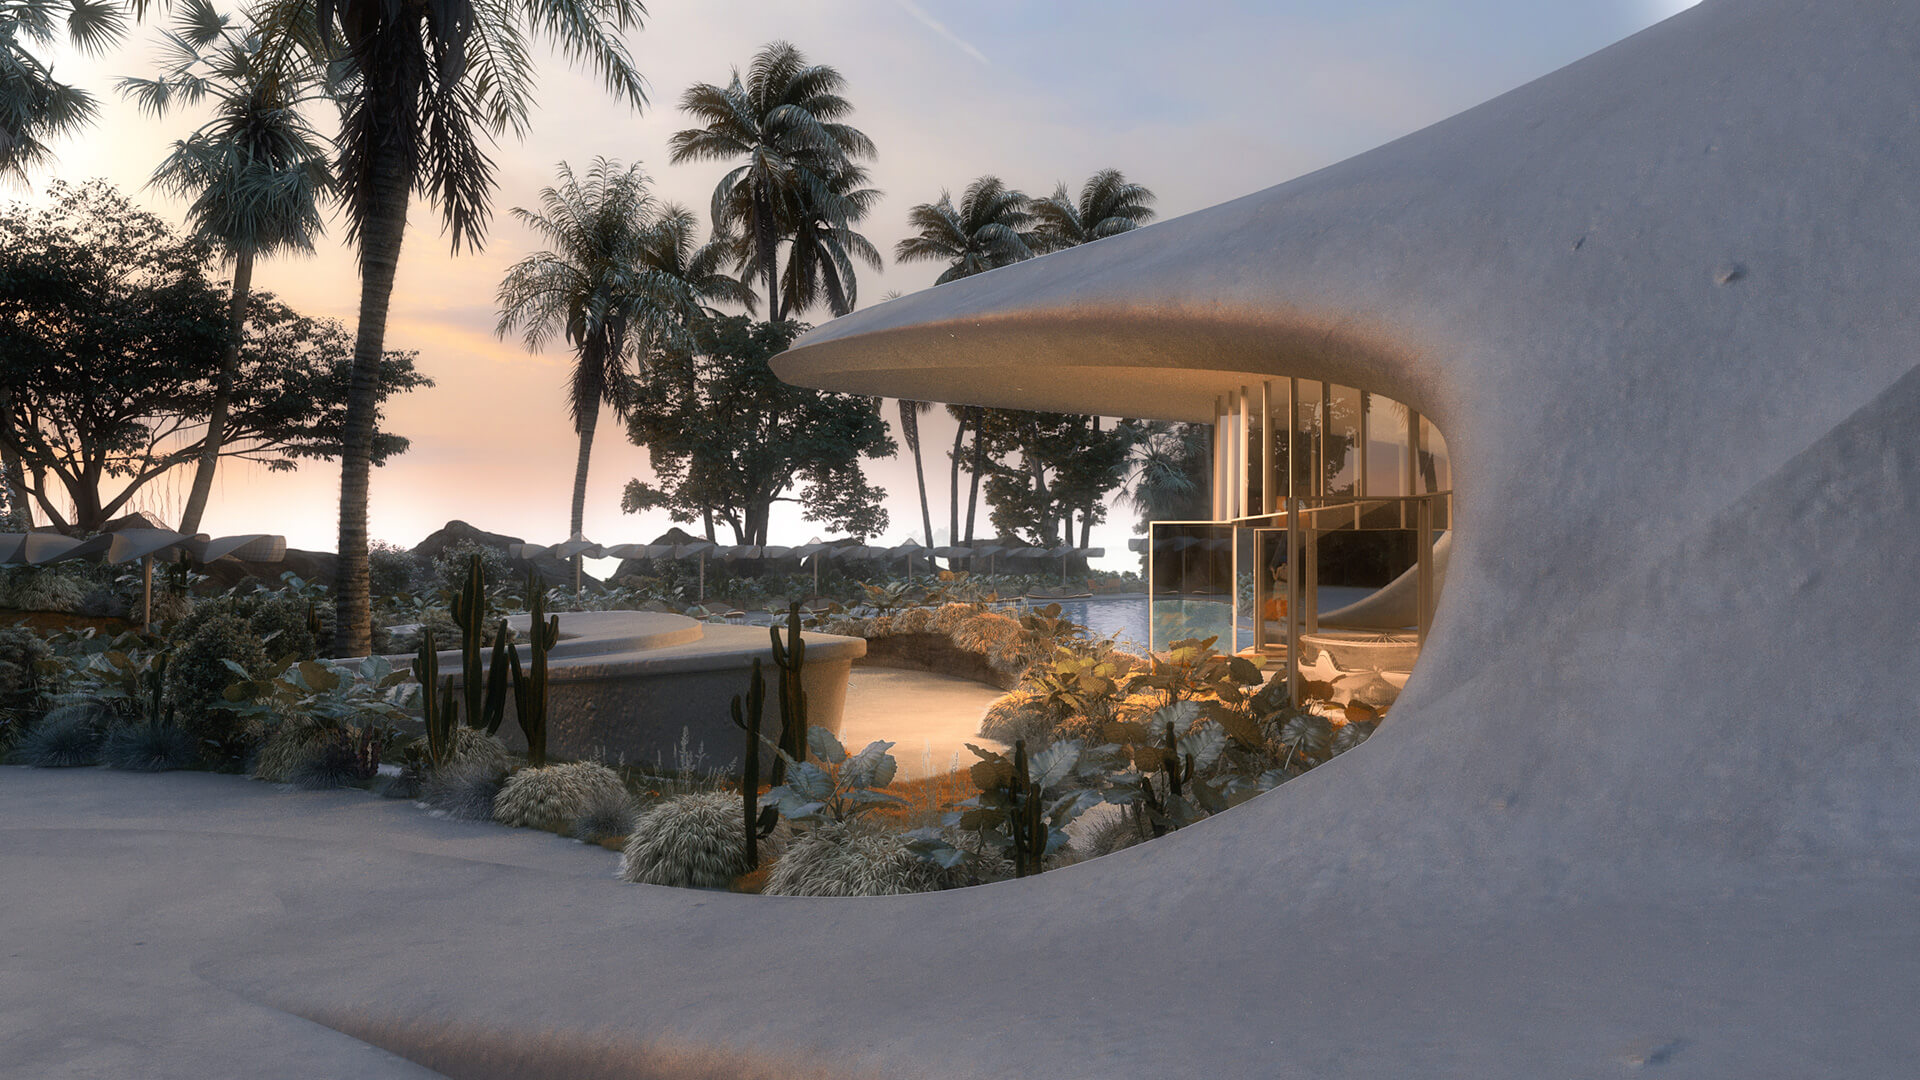 One can walk atop the polished, white roof | Villa G01 imagined by Mask Architects | STIRworld